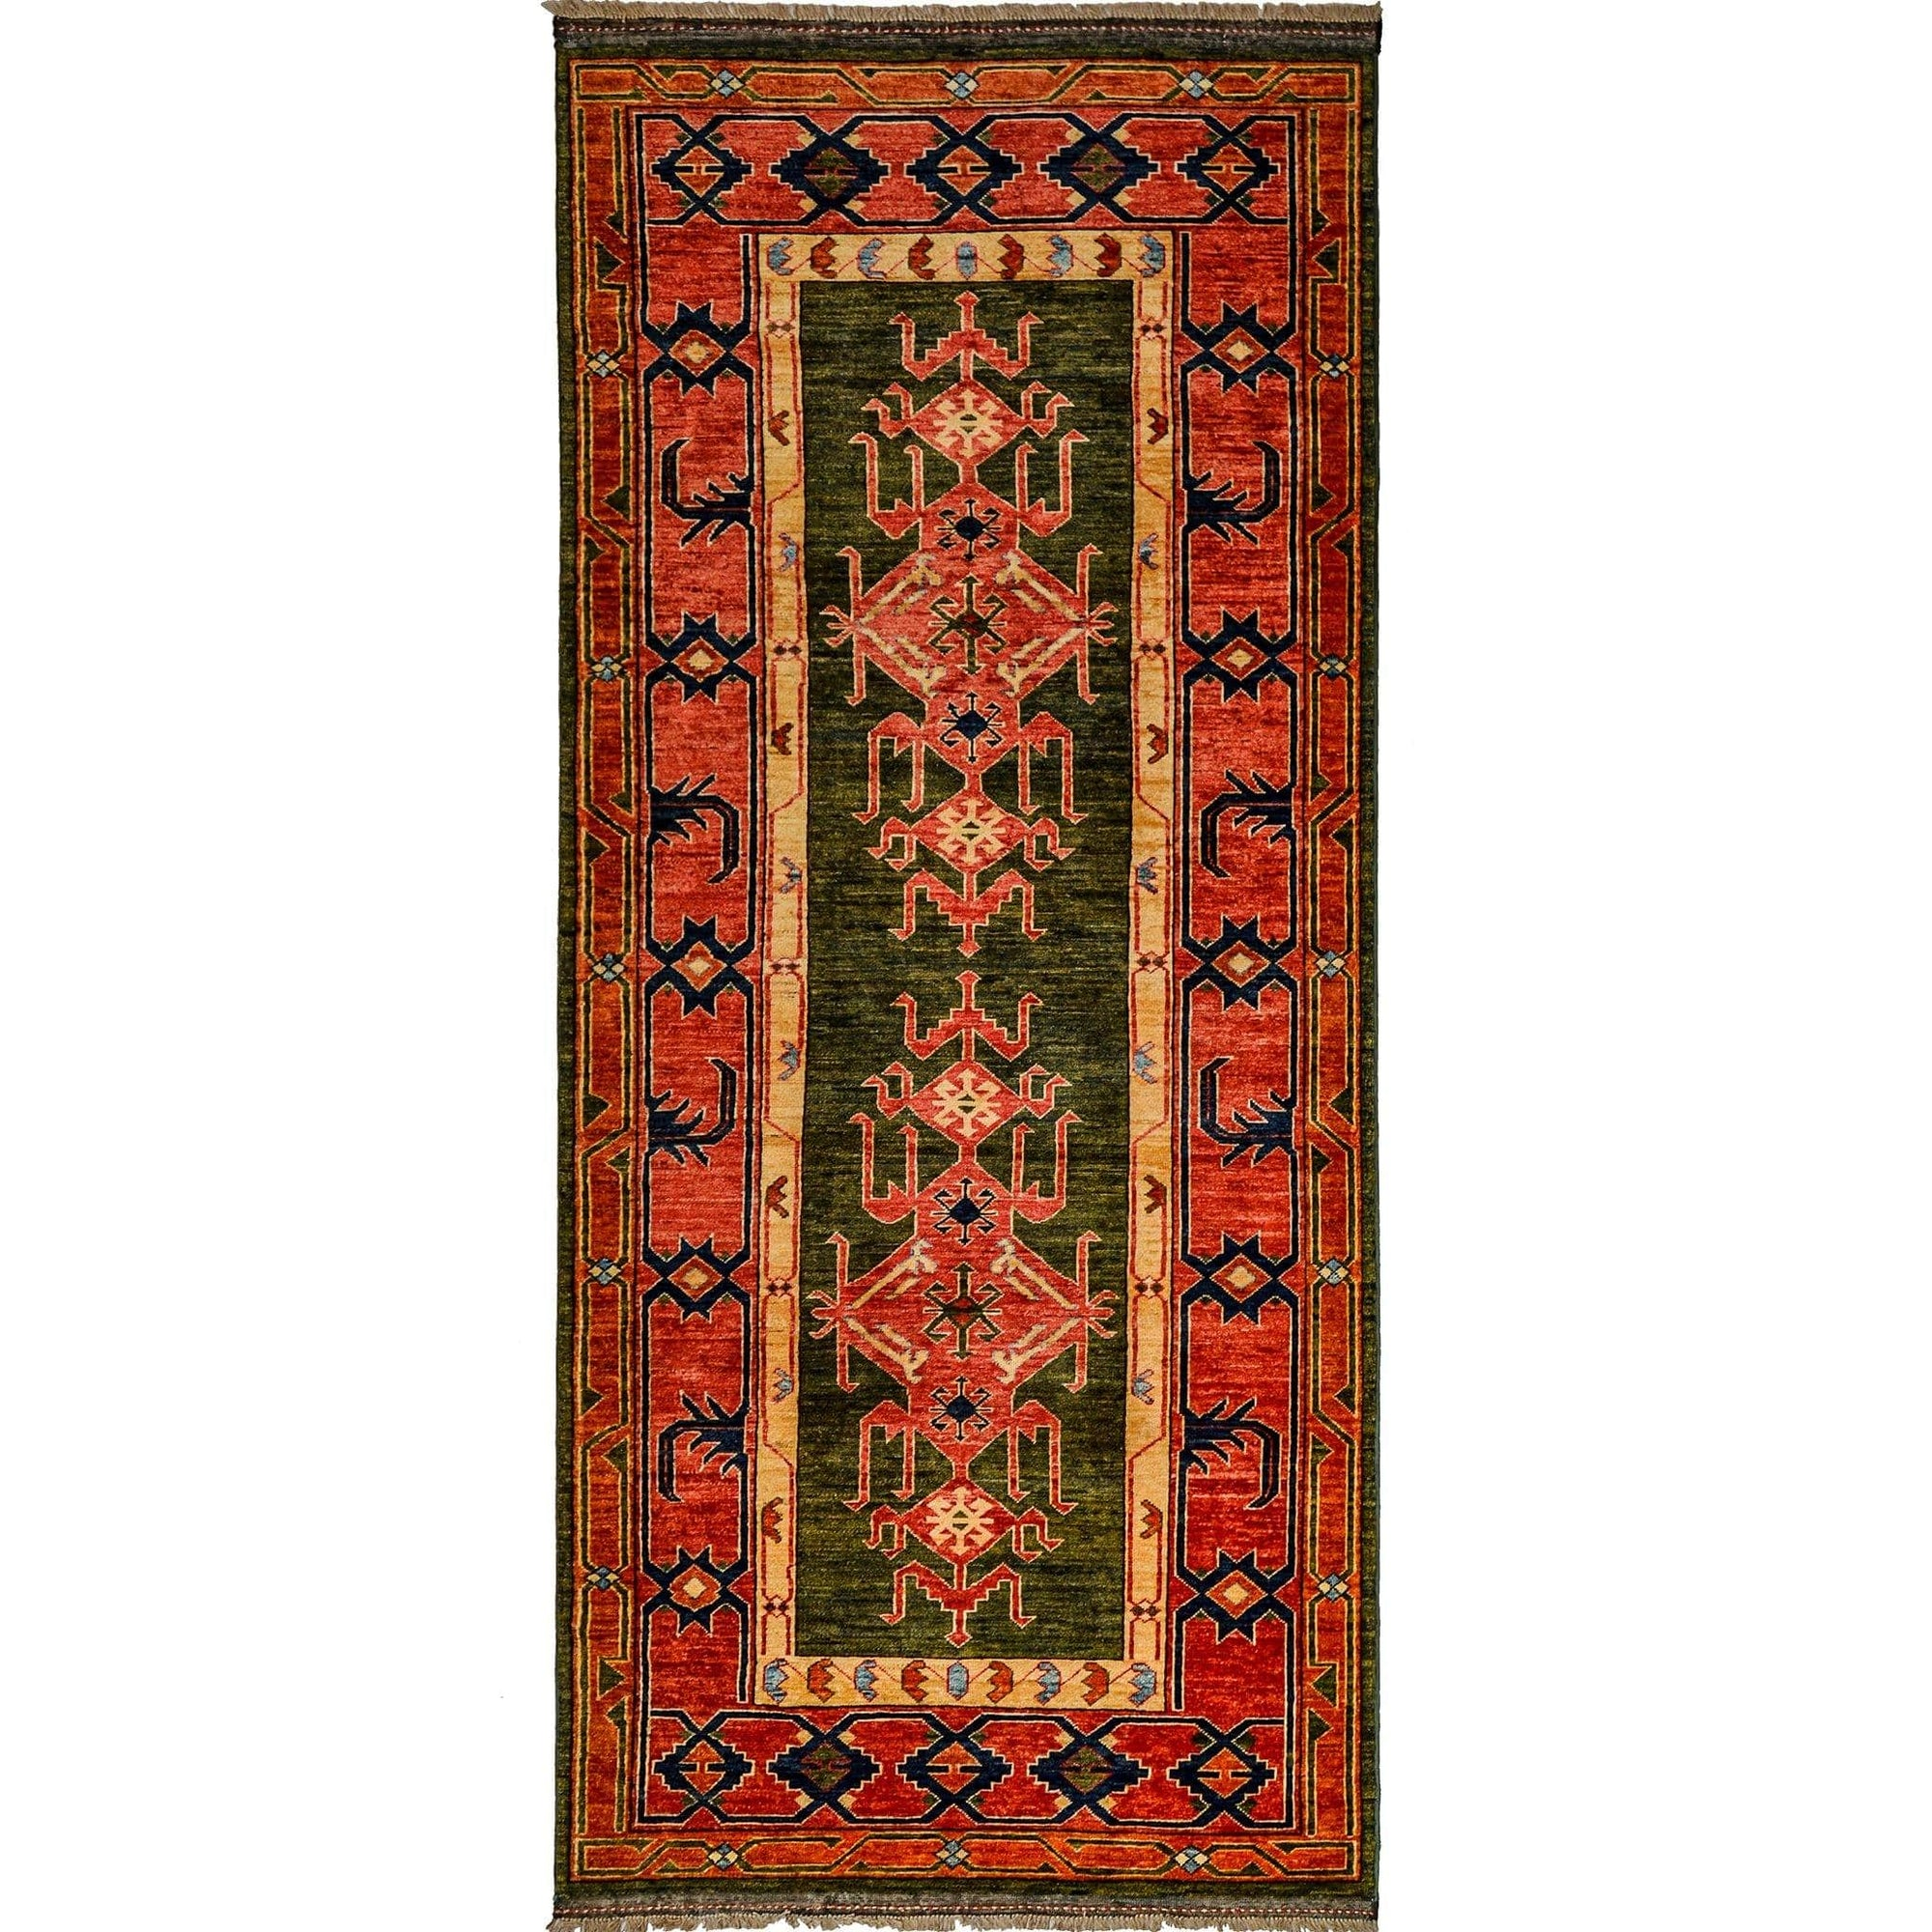 Fine Hand-knotted Wool Runner 127cm x 292cm Persian-Rug | House-of-Haghi | NewMarket | Auckland | NZ | Handmade Persian Rugs | Hand Knotted Persian Rugs